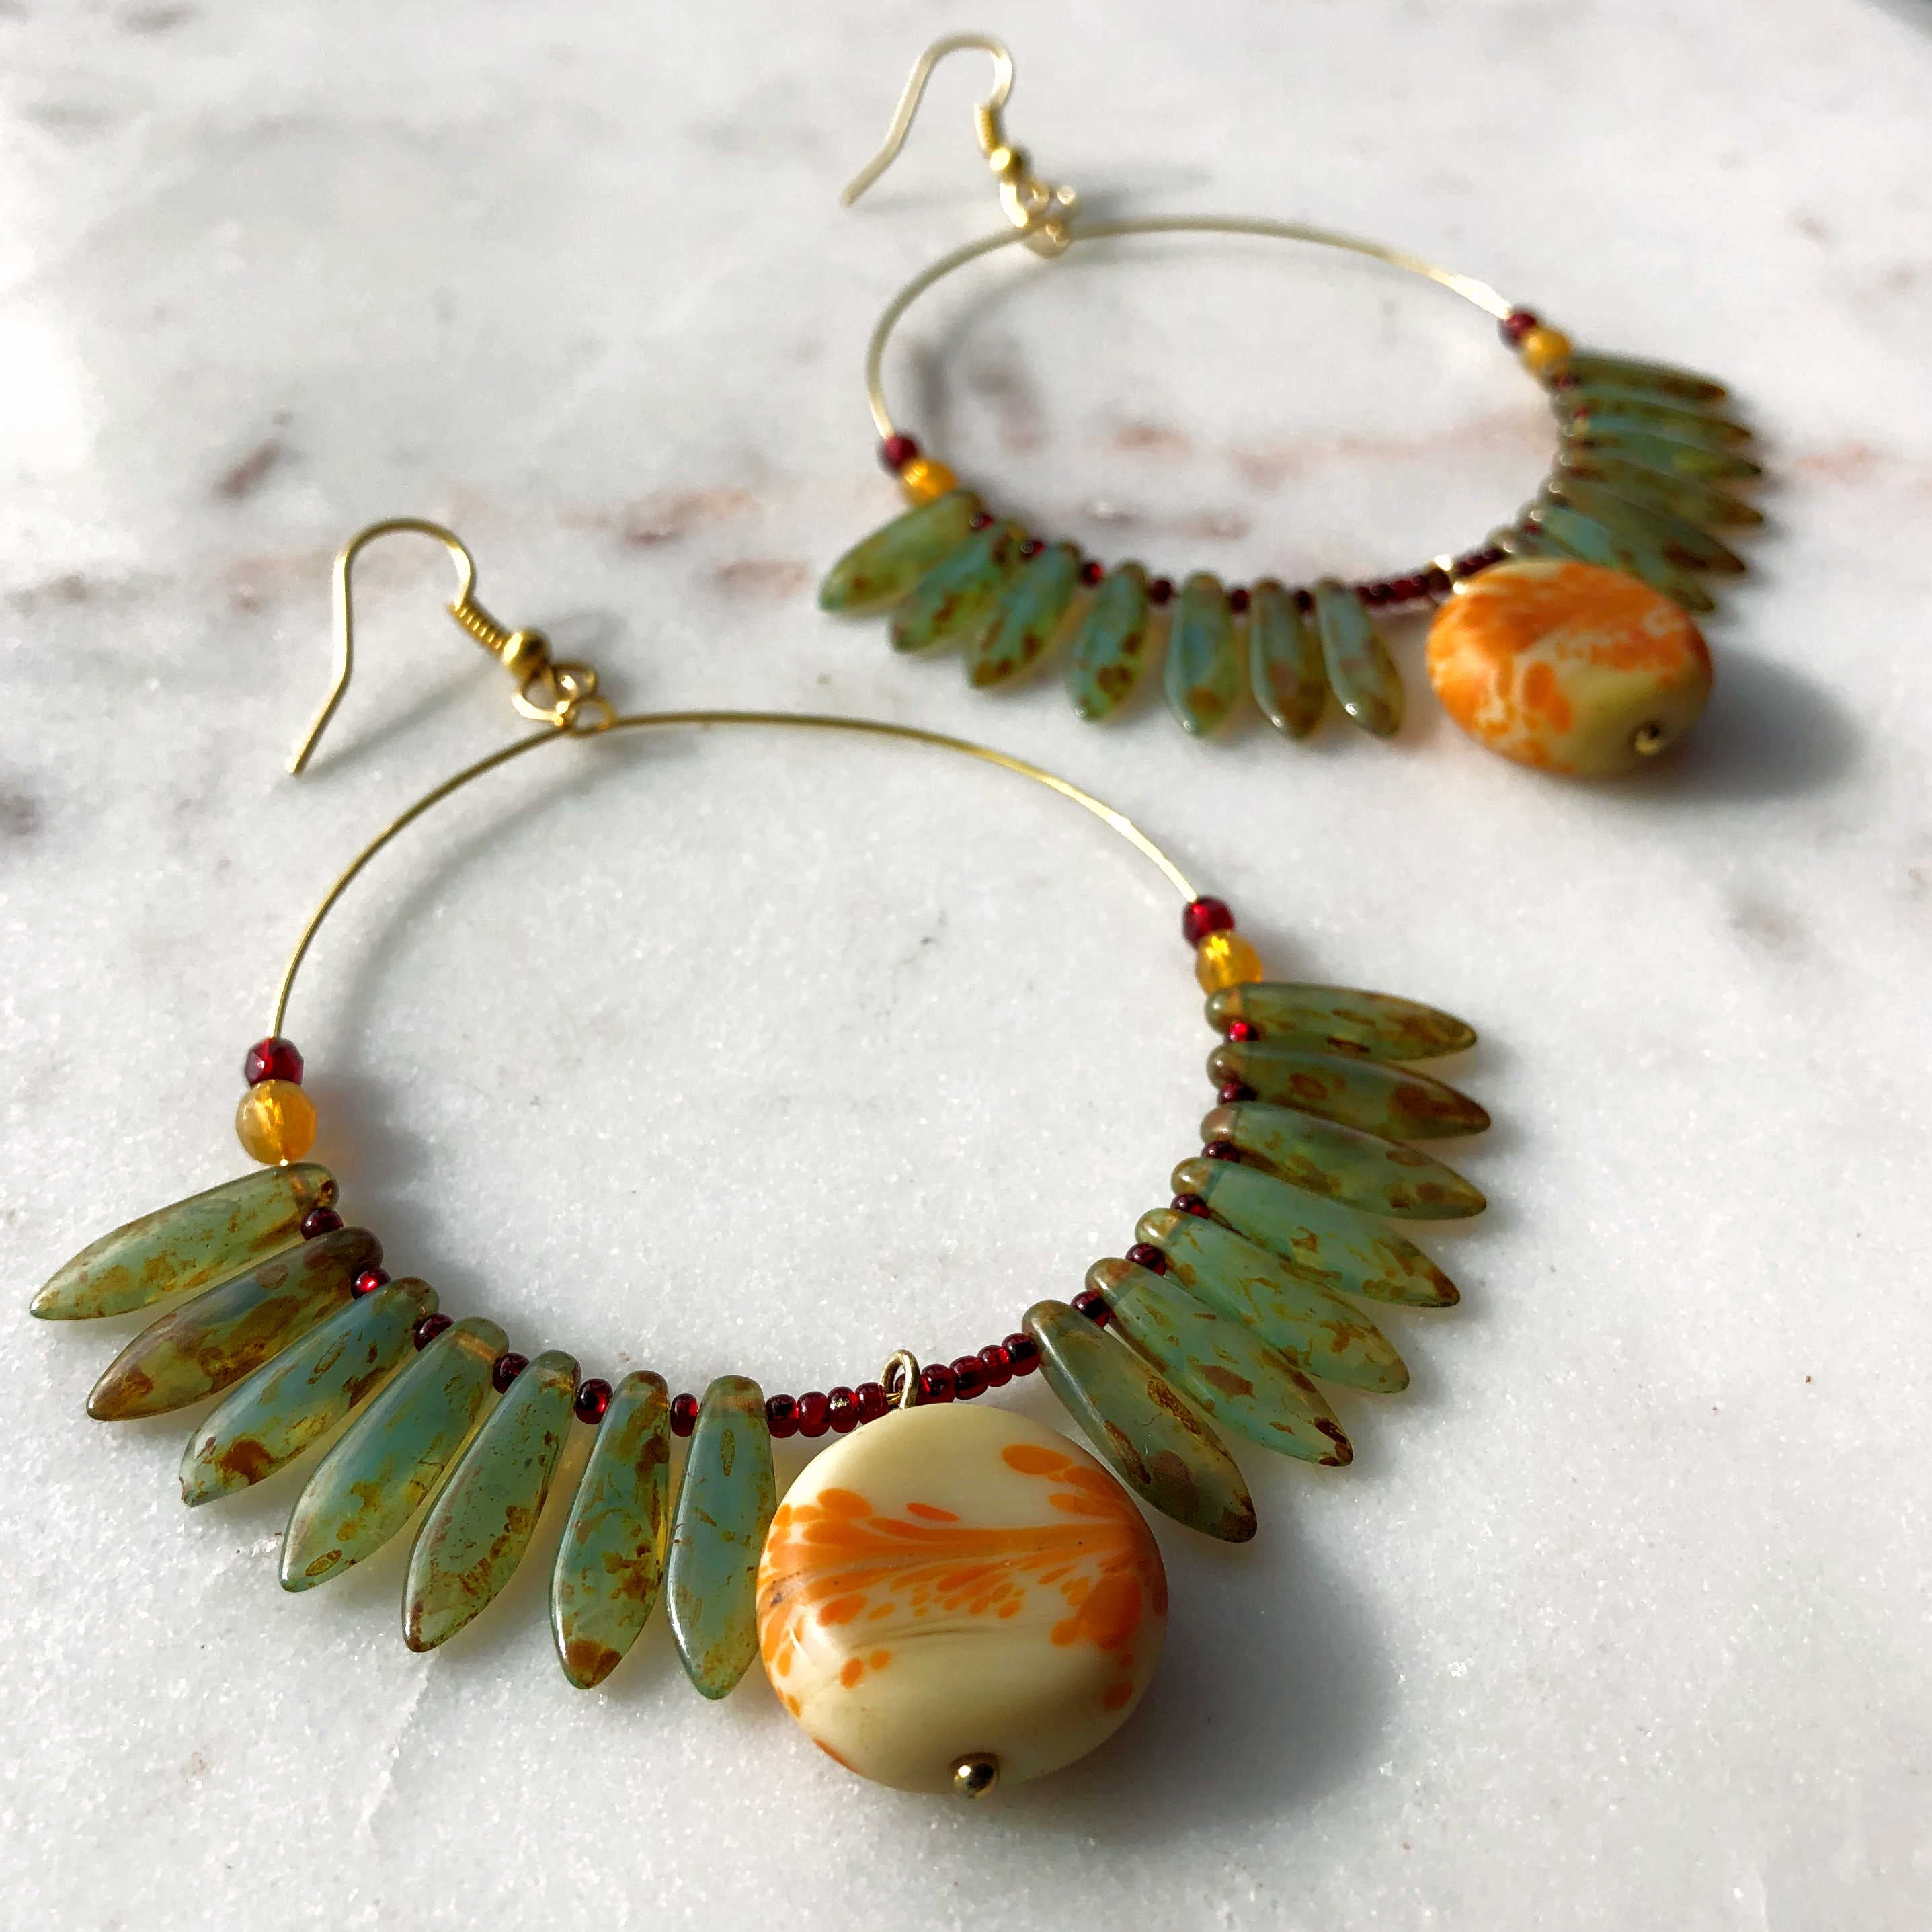 fringe earrings with green and orange beads